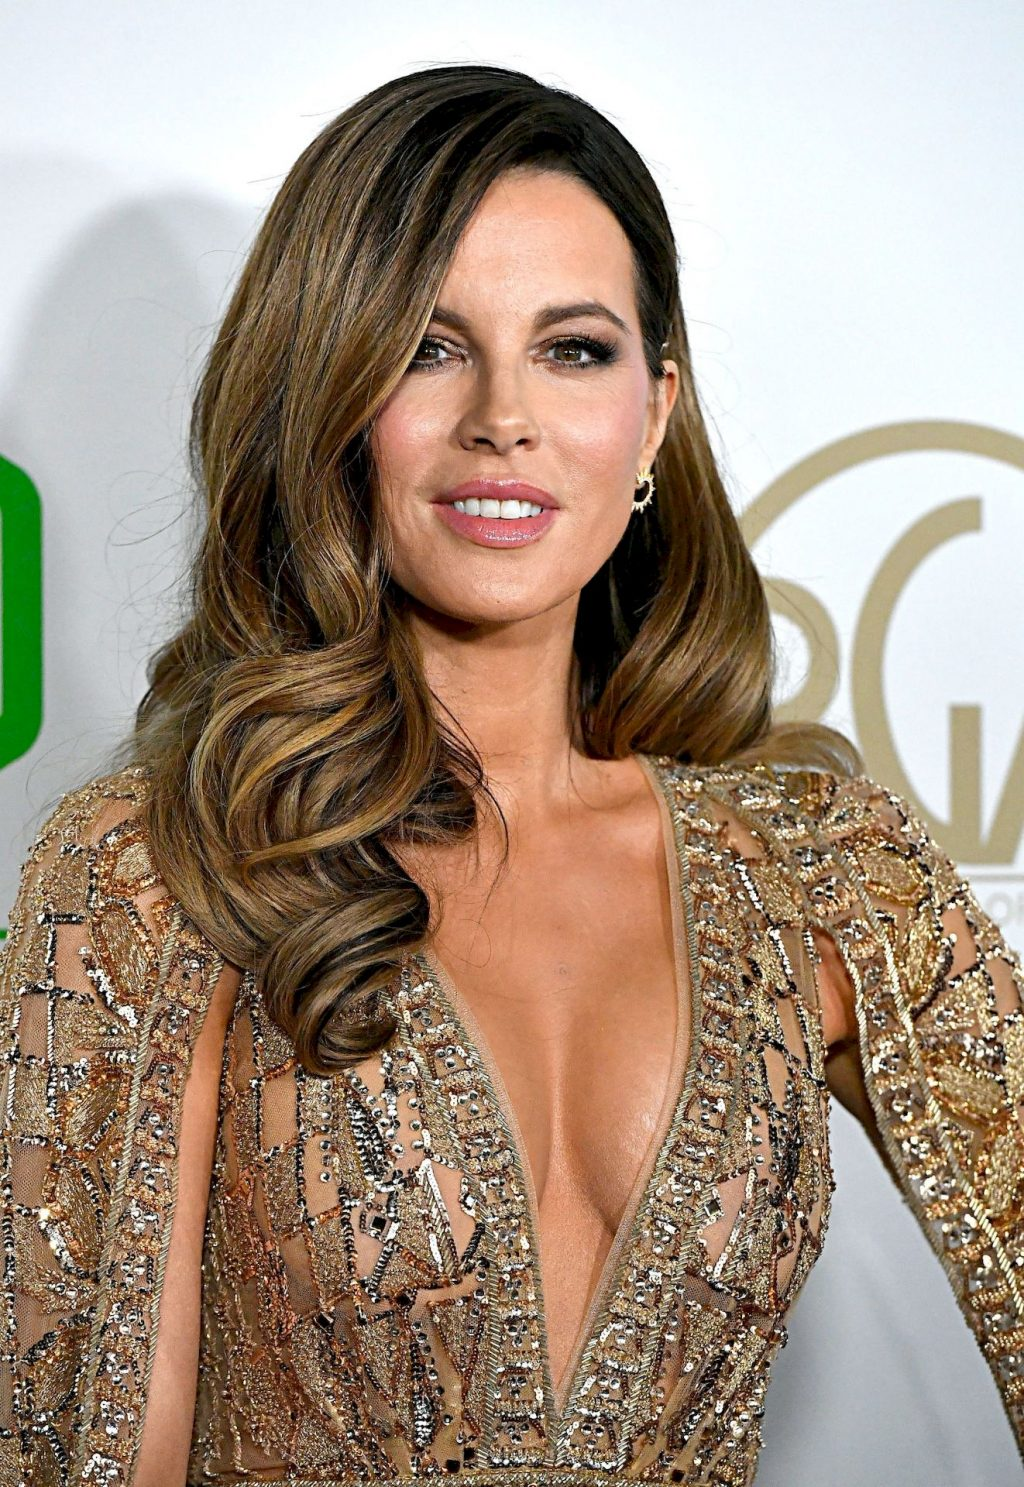 Kate Beckinsale Shows Her Cleavage at the 2020 Producers Guild Awards (40 Photos)